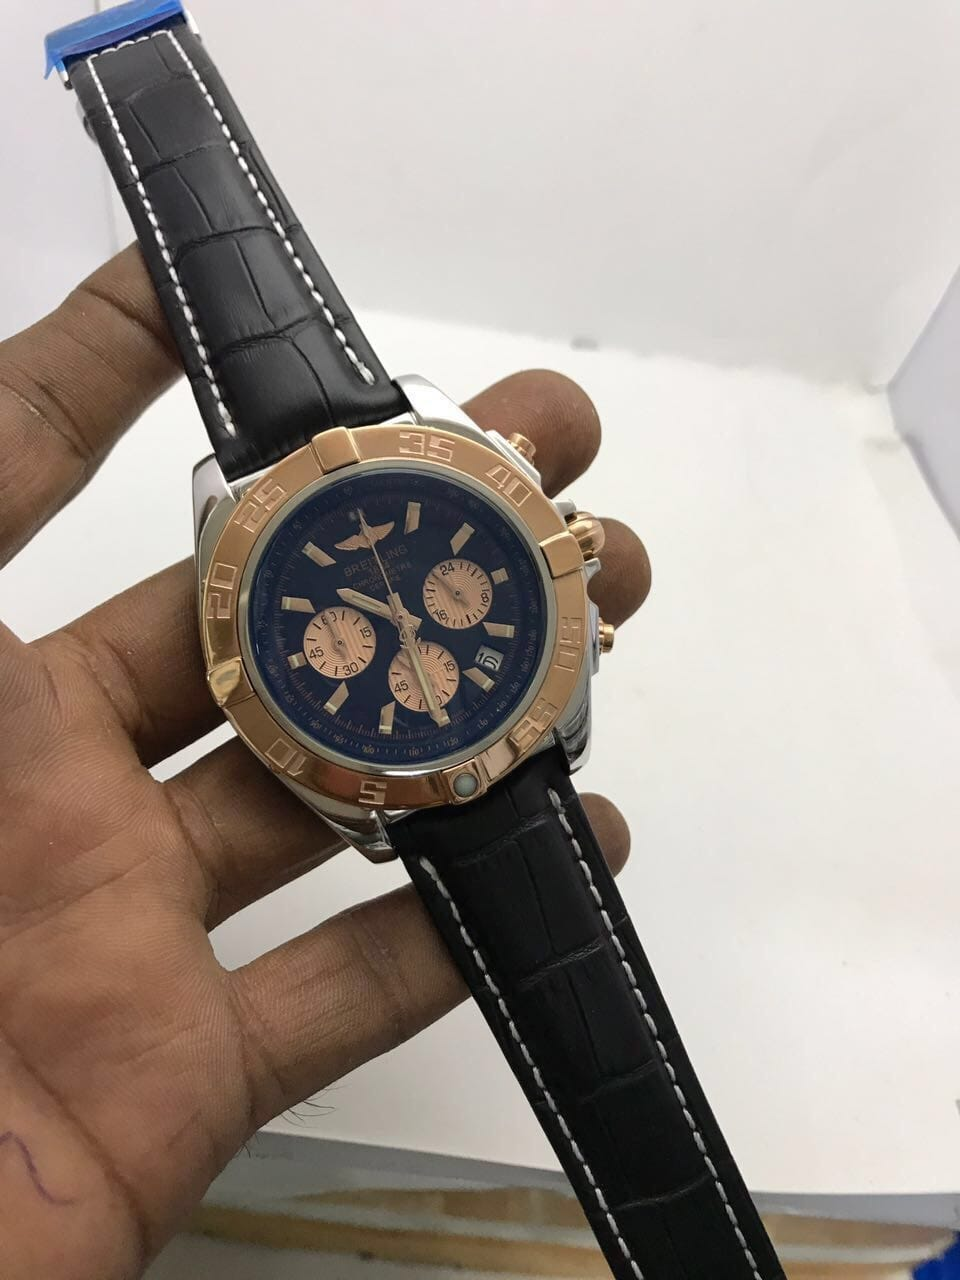 ⛔BREITLING WATCH FOR LADIES⛔ ⛔BEST QUALITY WATCH ⛔ALL CHRONOGRAPHS WORKING⛔ ⛔STOP WATCH MACHINE WORKING⛔ ⛔DATE WORKING⛔ ⛔BRAND NAME ON BACK&LOCK&LOGO KEY⛔  ⛔₹₹@3600/- FREE SHIP ALL INDIA⛔  TO BUY SEND DM OR WATSAAP 9999142594  Chat with me on the #RoposoApp to buy this product! #roposo #thebazaar #roposochattobuy #fashion #shopping #shop #buy #seller #newarrival #onlineshopping #latesttrend #fashionpost #fashionlove #fashionoftheday #fashionlook #fashionlover #trending #trendyfashion #onlineboutique #onlinestore #onlineshop